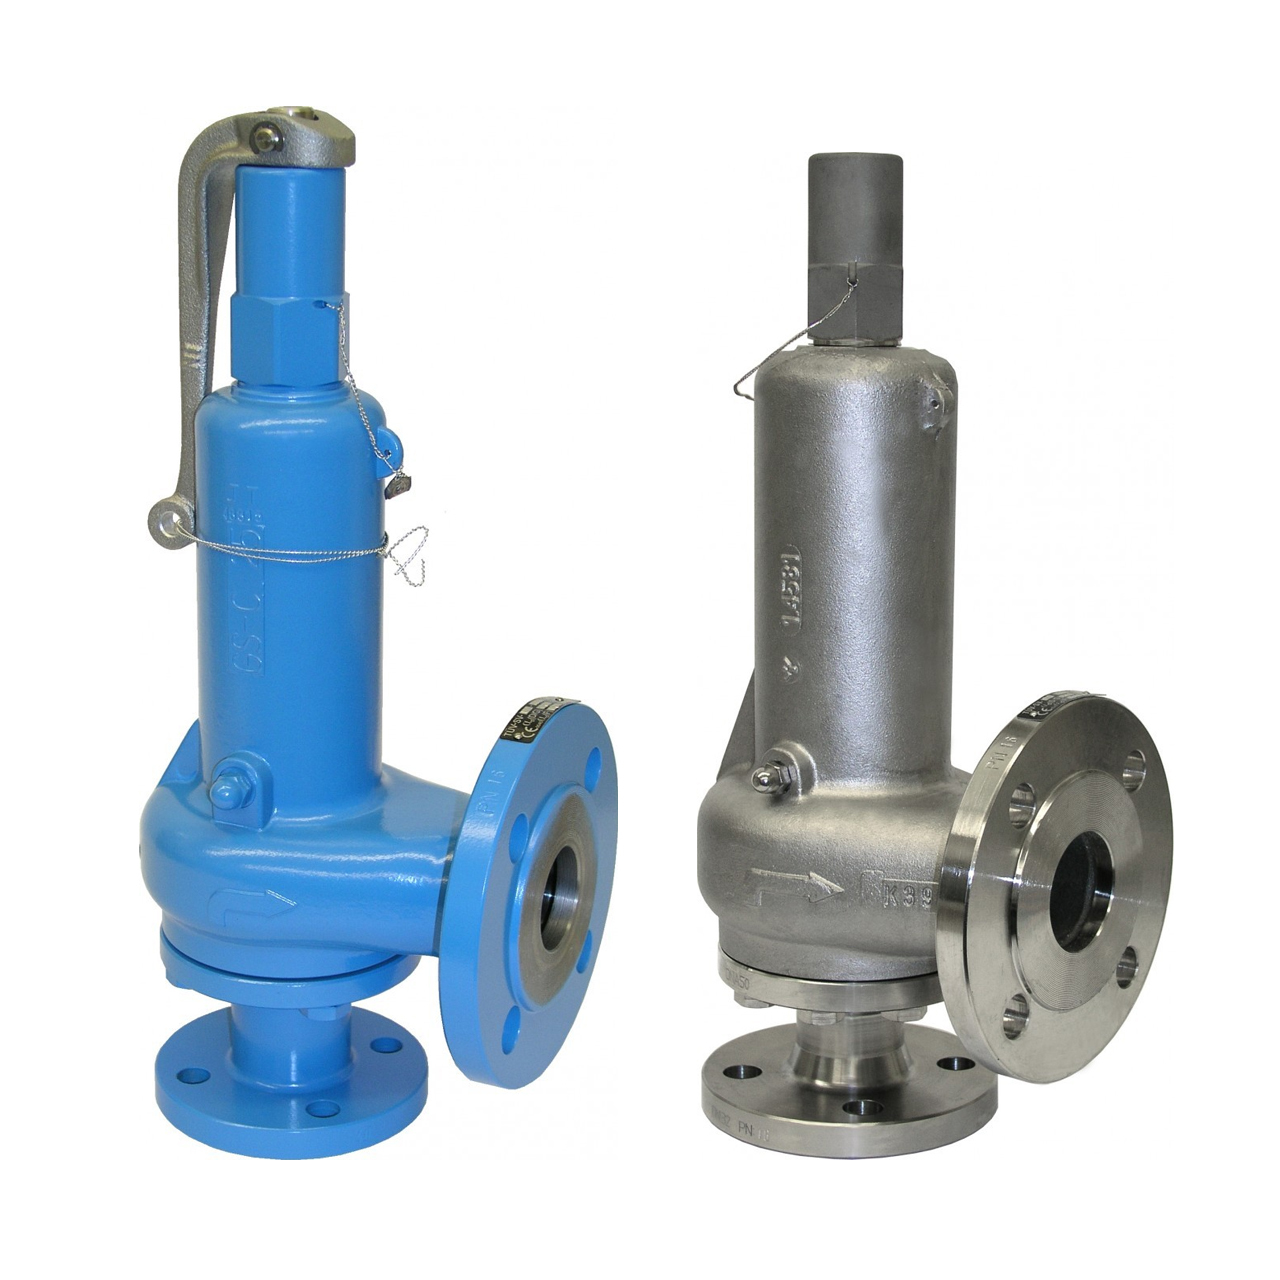 The Layout of Safety Valves